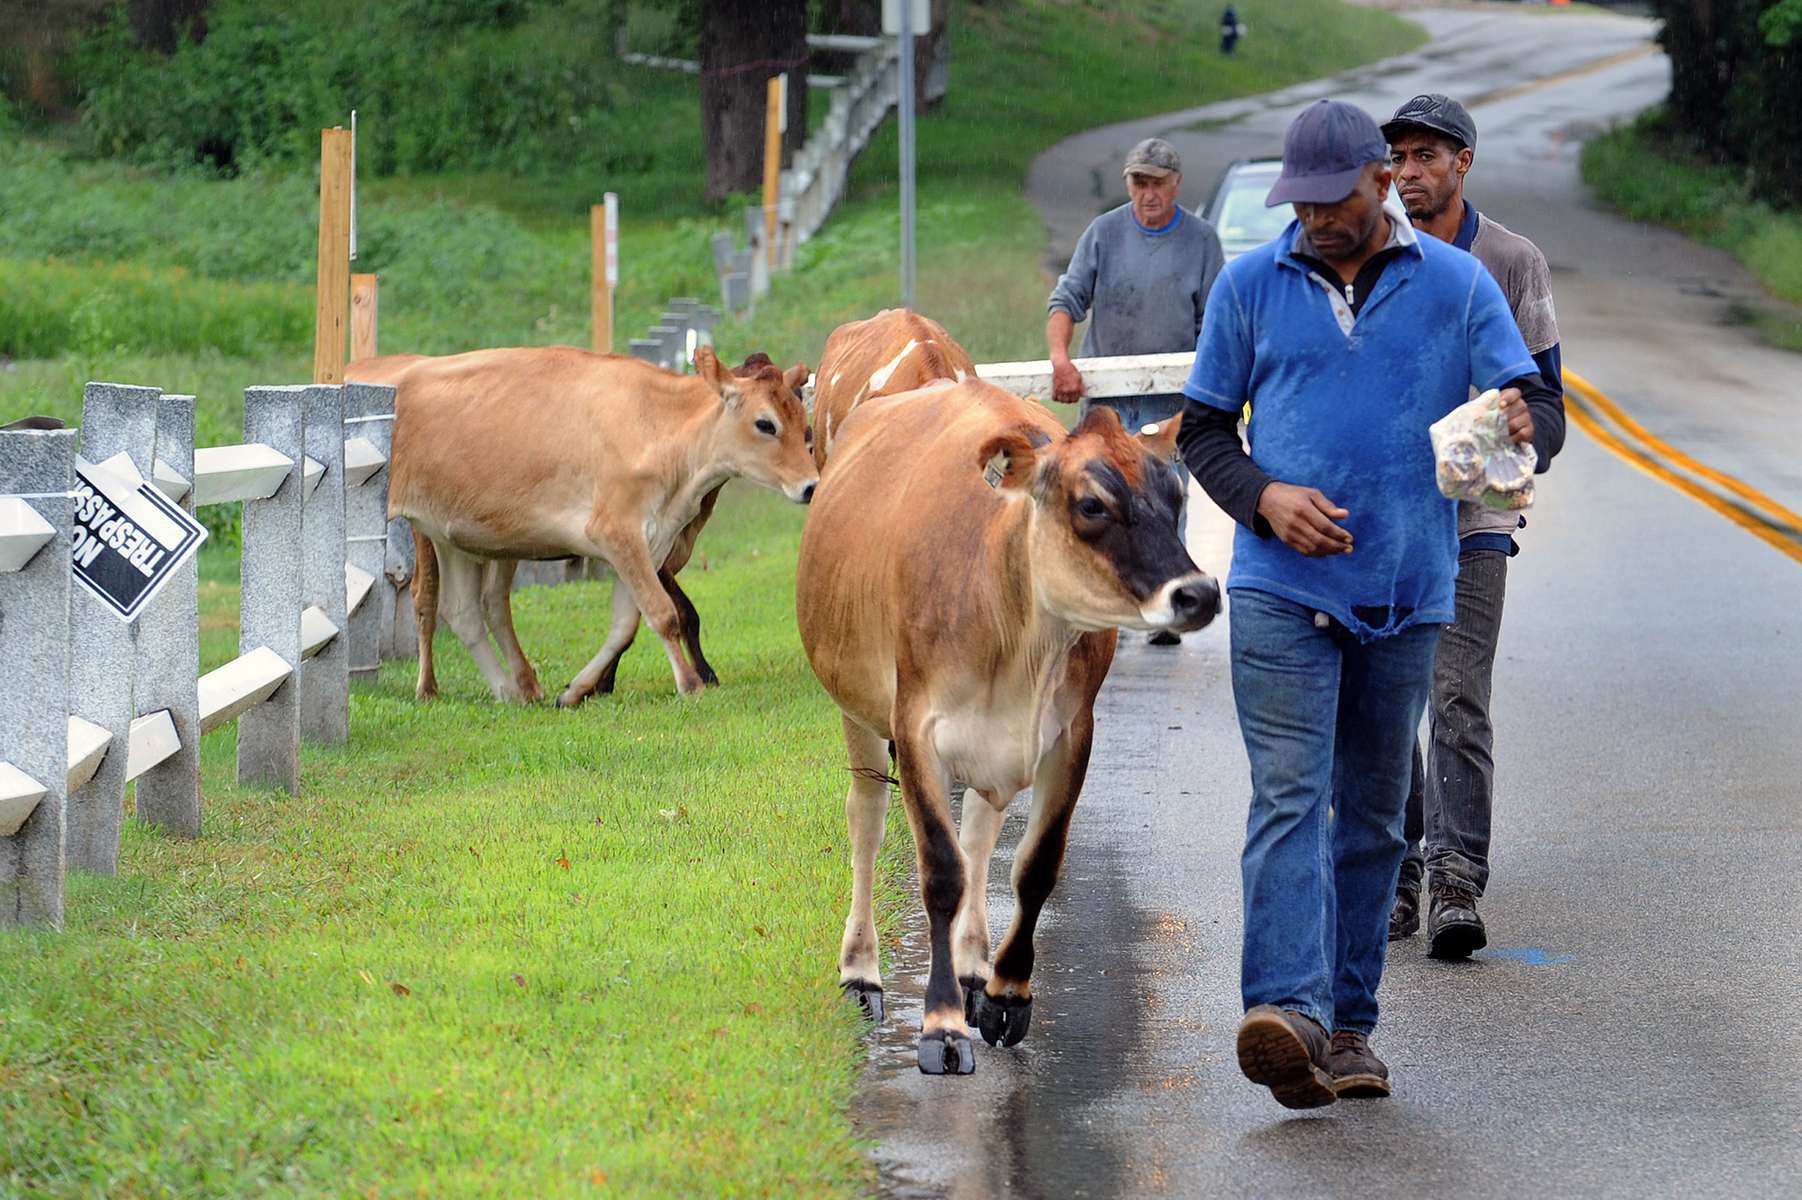 9/2/20-- FRAMINGHAM--  Eastleigh Farm cows are escorted back home after taking a walk by themselves to the Millwood Preserve condo project on the former Millwood Golf Course on Millwood Street Tuesday. [Daily News and Wicked Local Staff Photo/Art Illman]